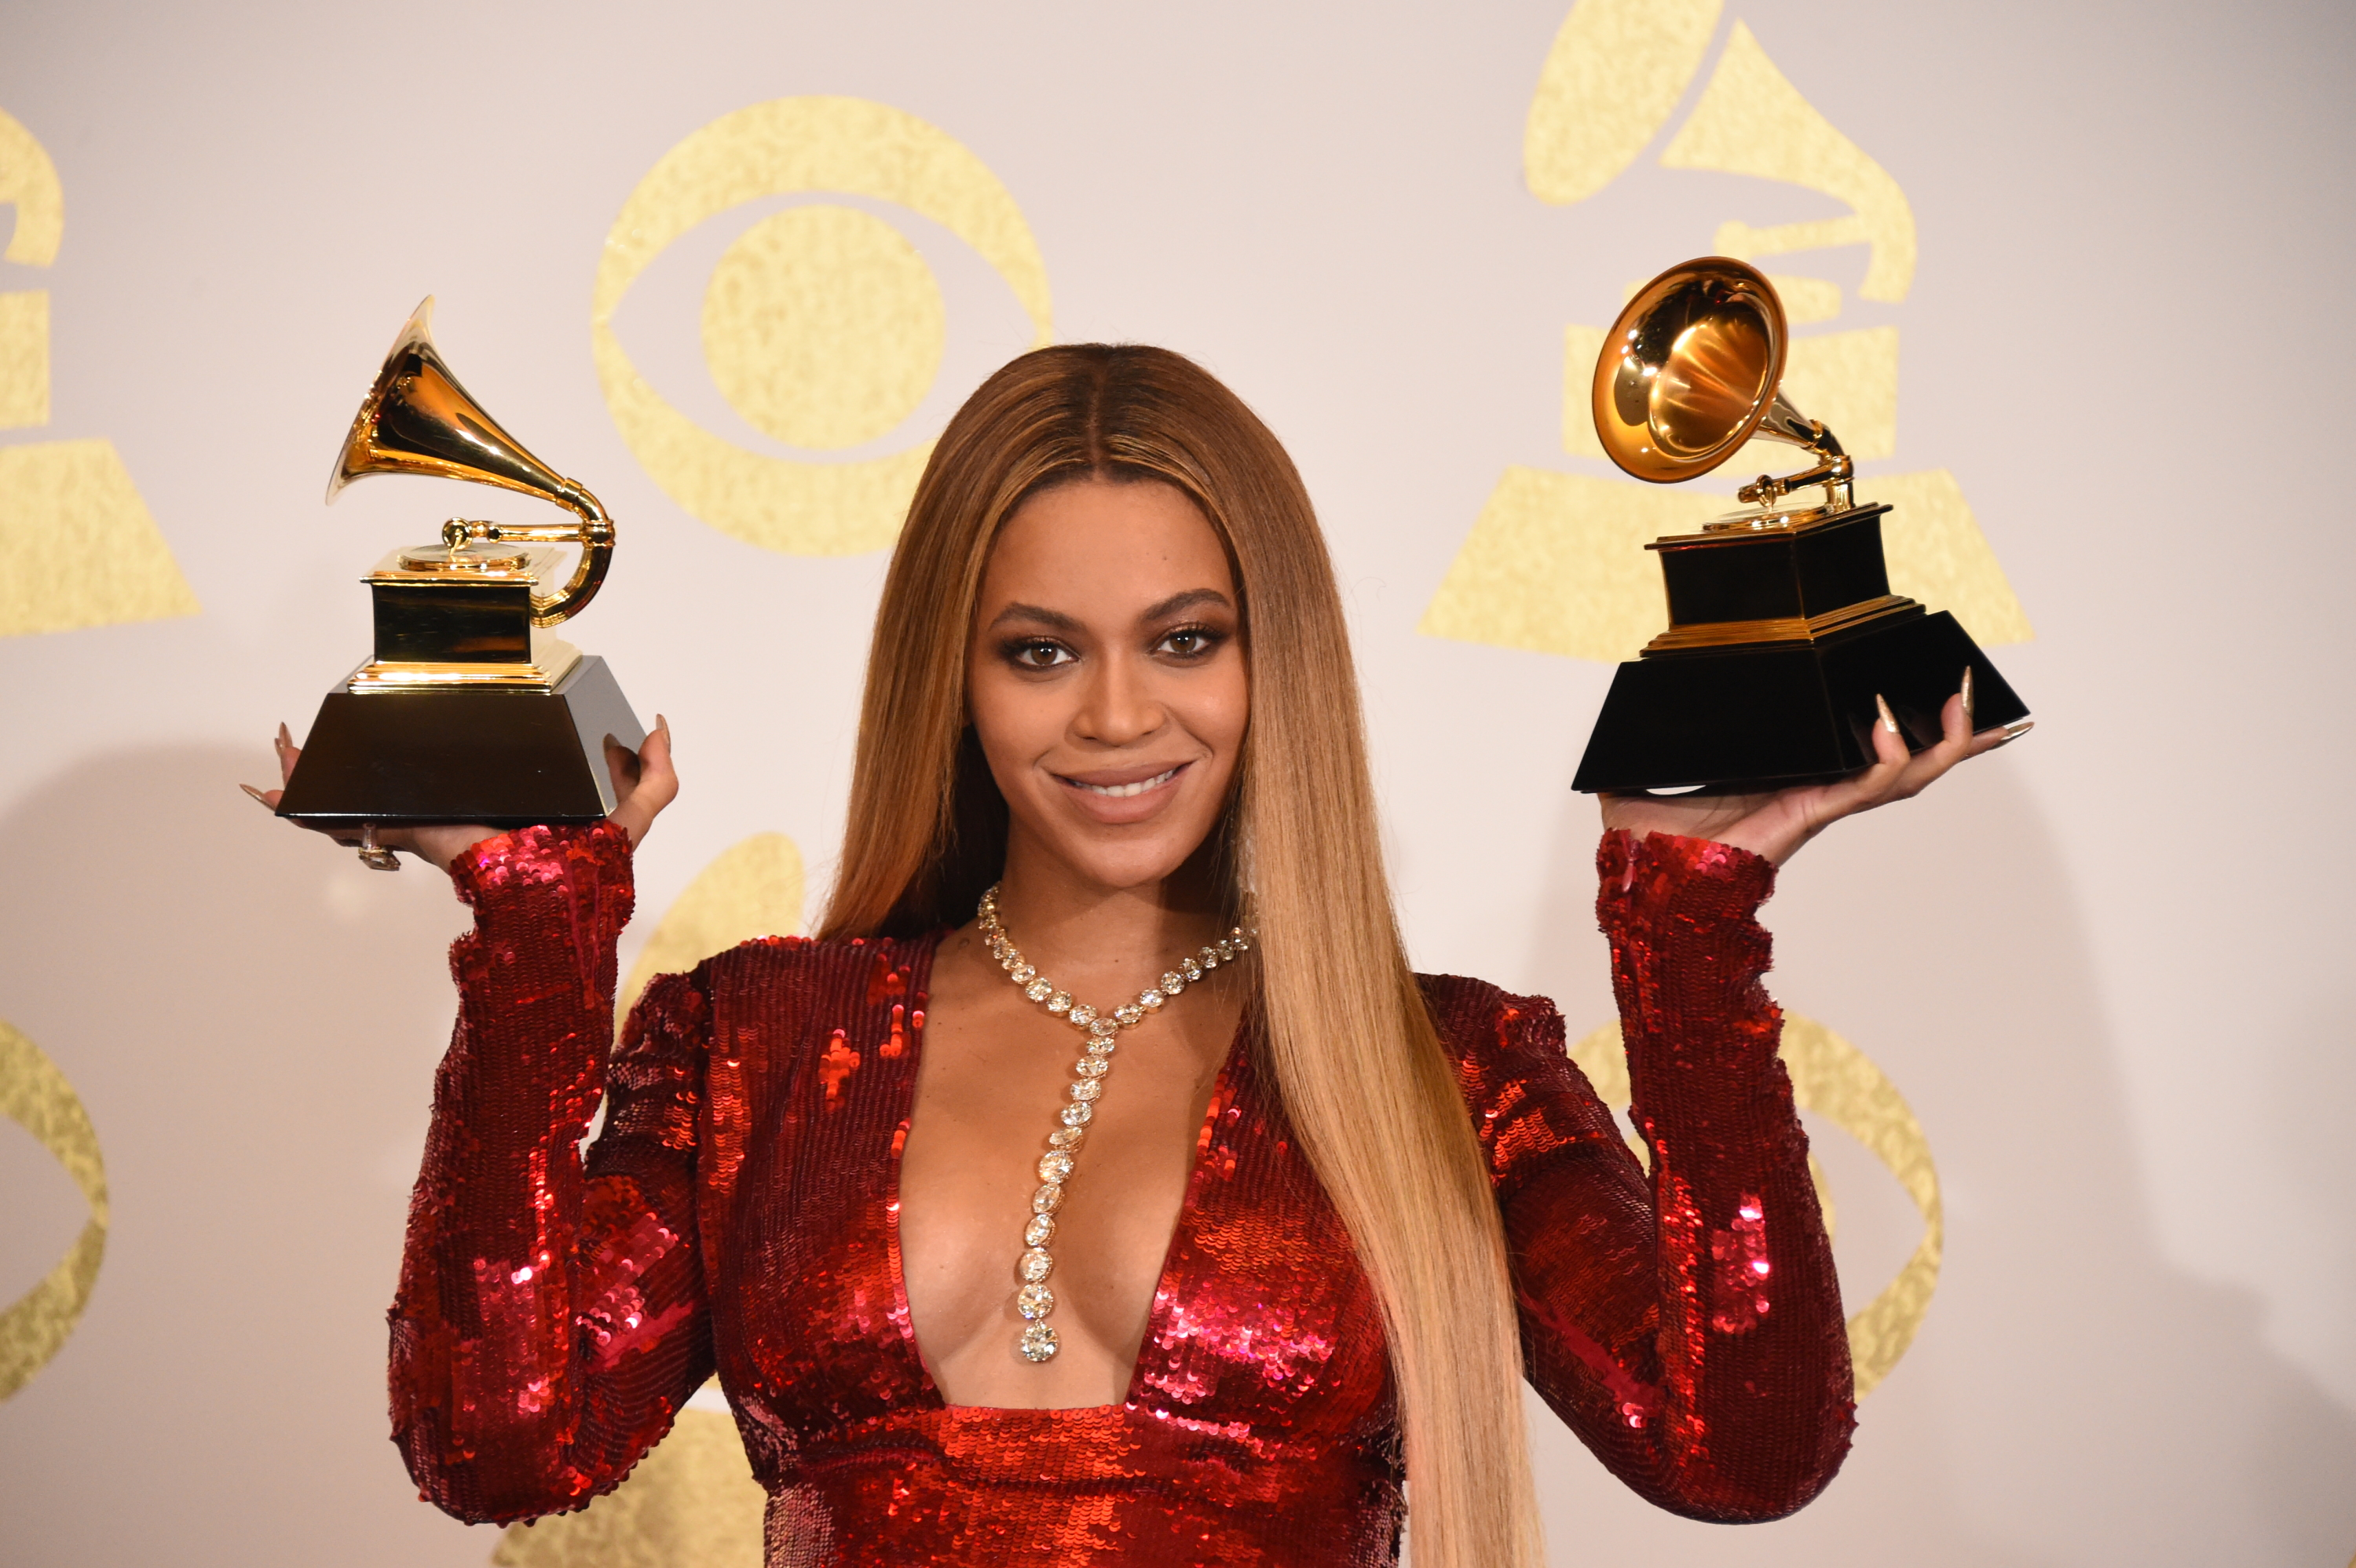 Beyoncé poses for photographs backstage at THE 59TH ANNUAL GRAMMY AWARDS.